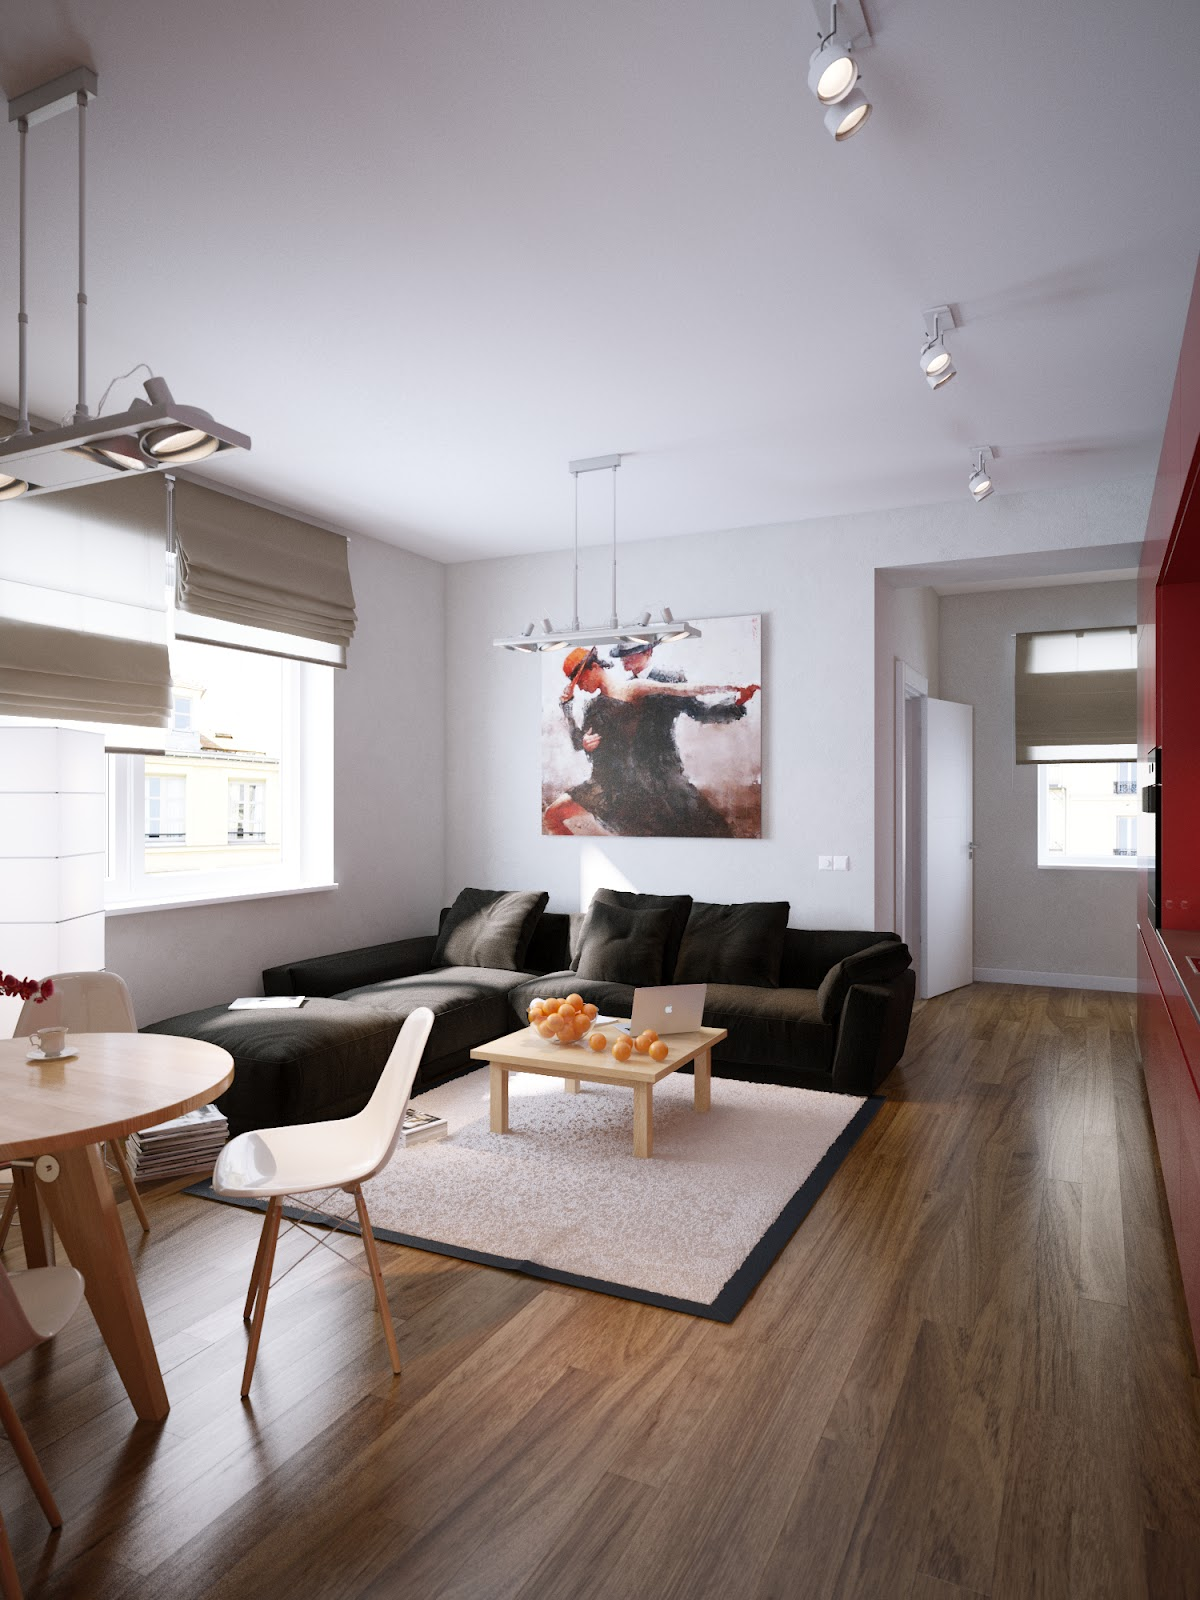 Apartment Decorating Ideas For Young Couples modern red apartment for a young couple [visualized]